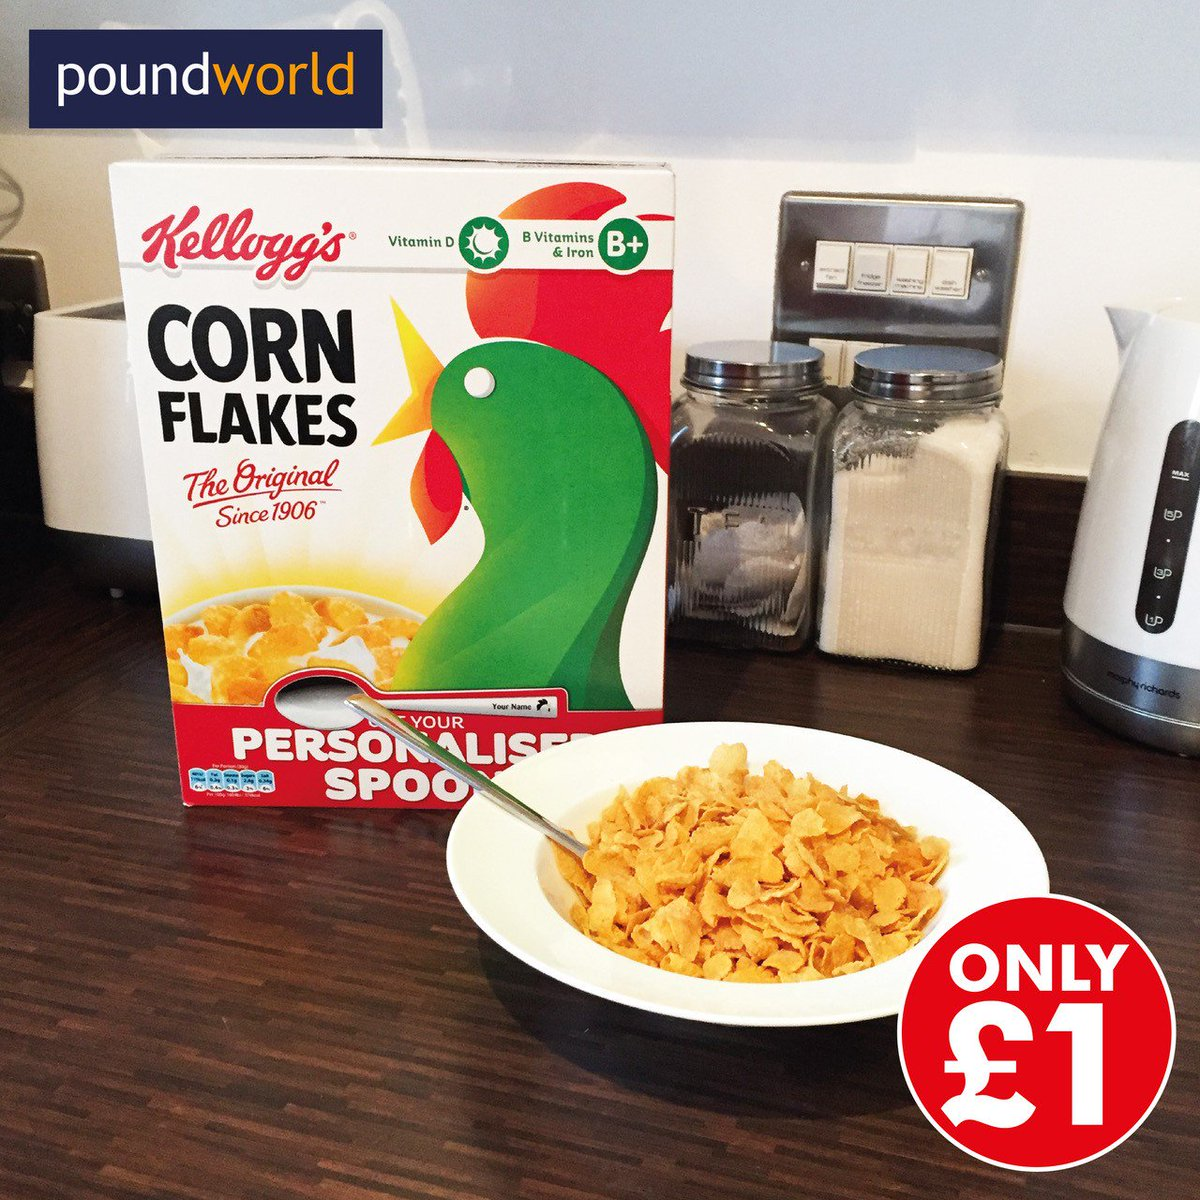 Poundworld On Twitter Its Breakfastweek Heres A Crunchy Deal Kelloggs Corn Flakes 500g For Only 1 450g Box Costs 175 In Other Stores At The Mo Https Tco U1lj0jtd4z